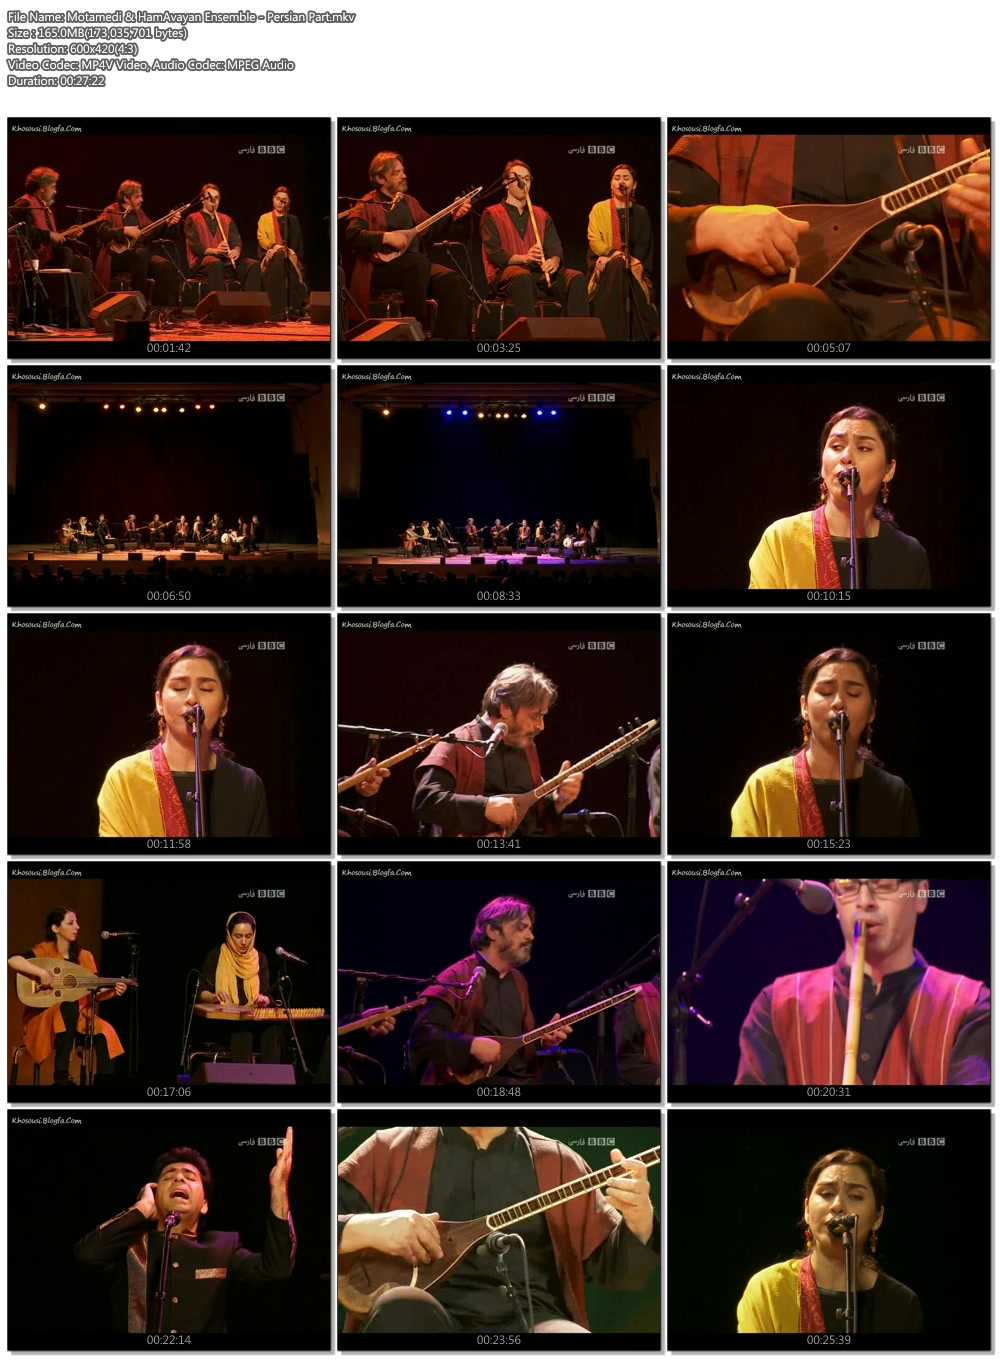 http://s2.picofile.com/file/8100581384/Motamedi_HamAvayan_Ensemble_Persian_Part_mkv.jpg